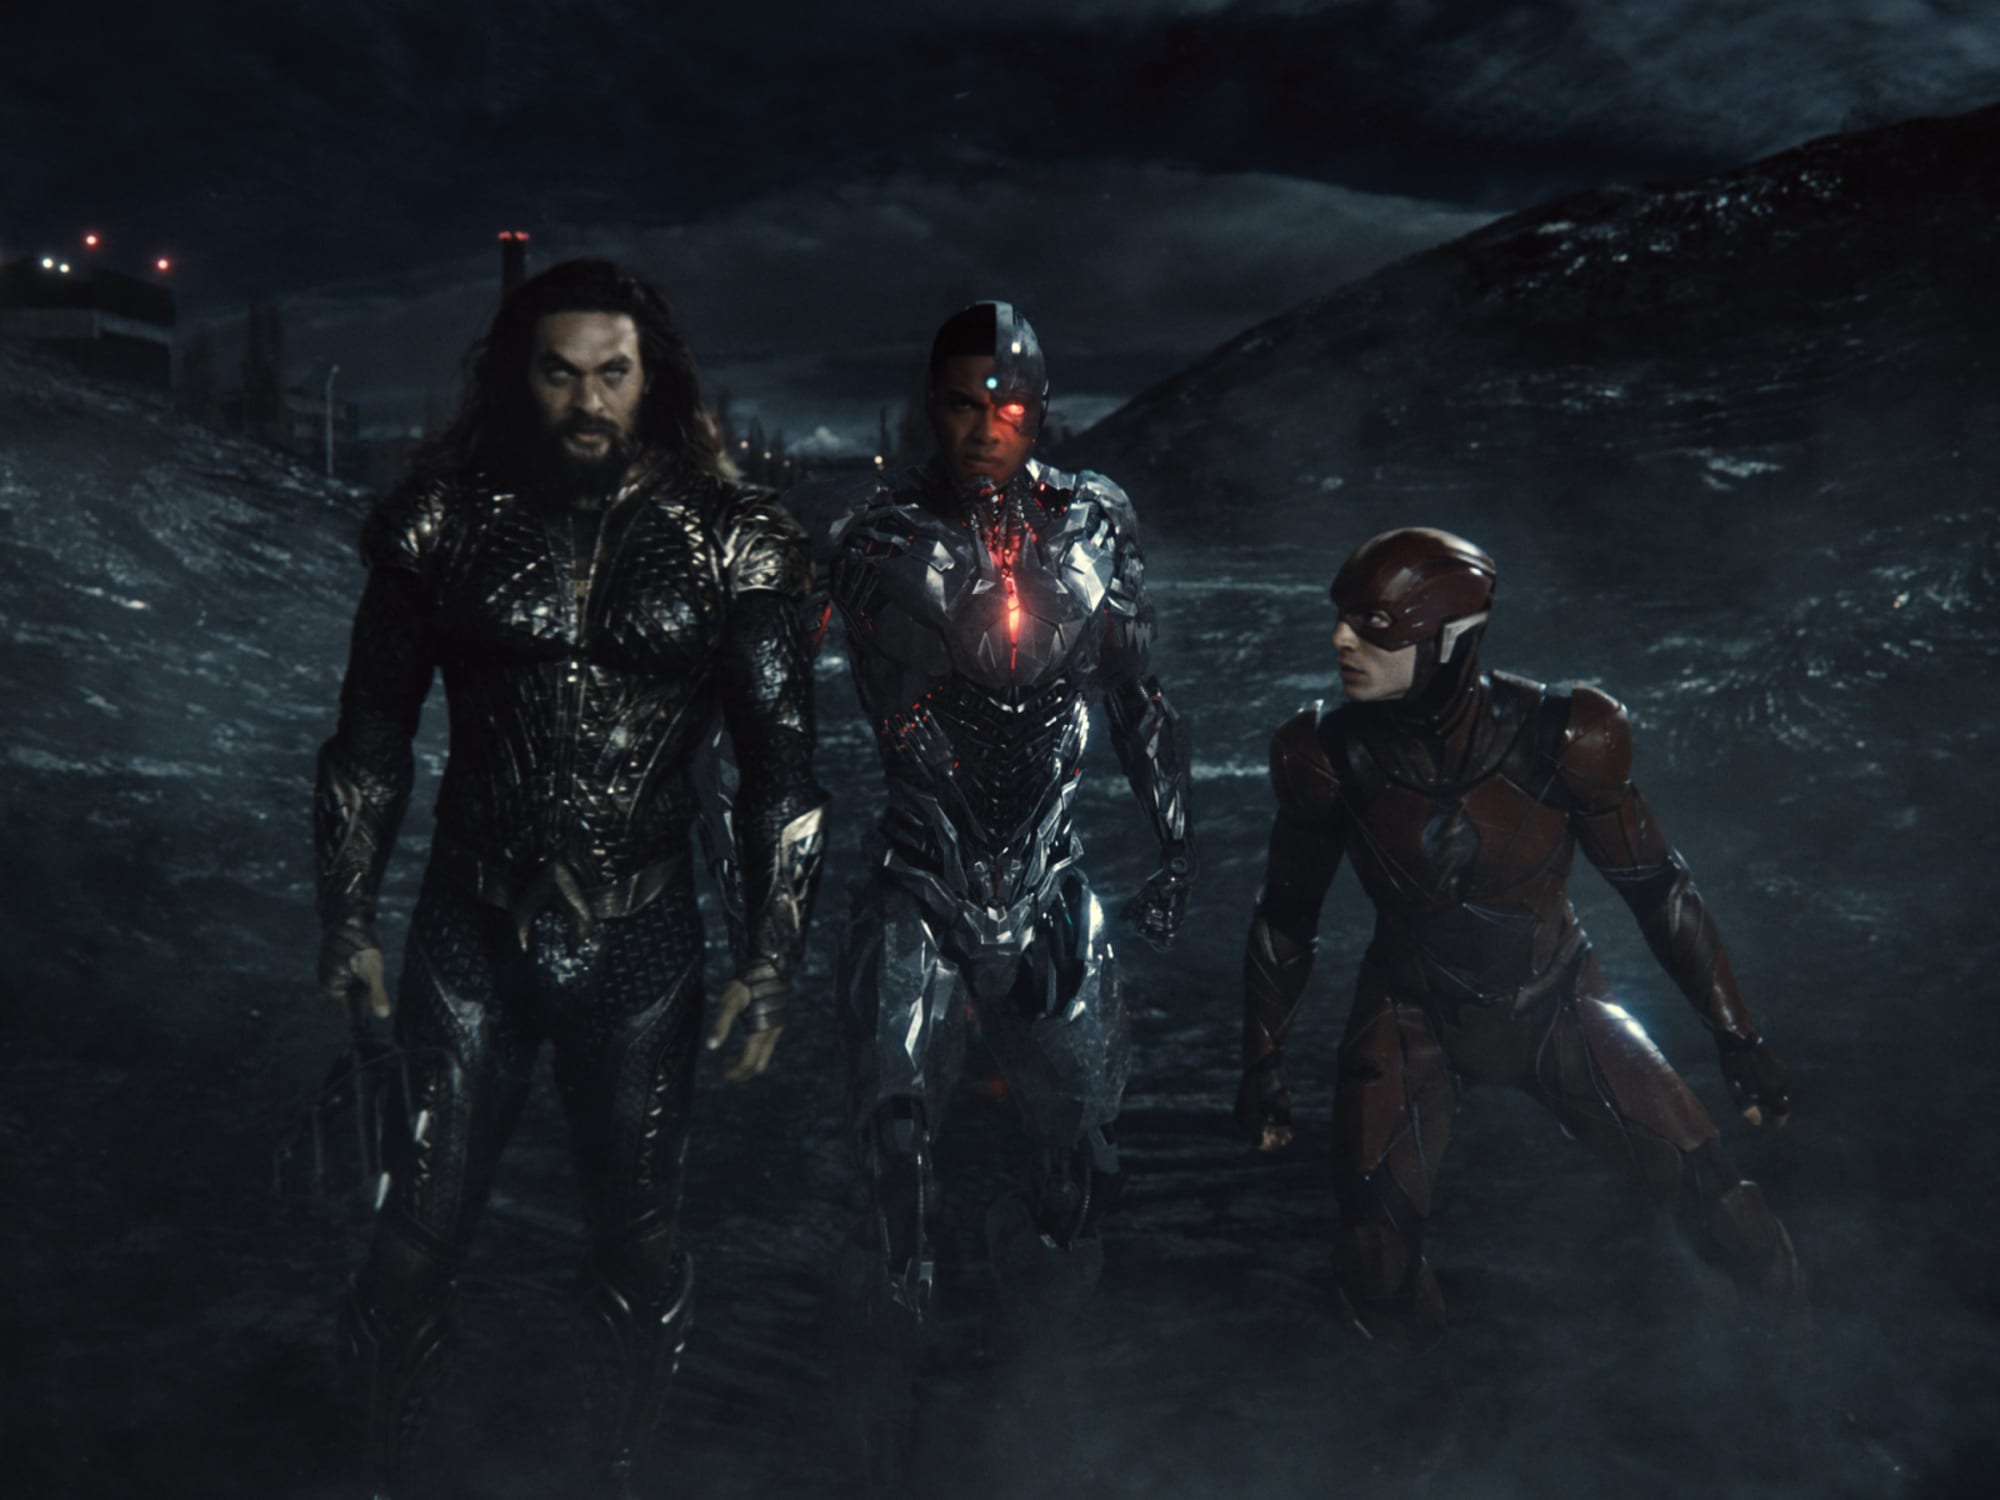 Why Warner Bros. almost cancelled Zack Snyder's Justice League